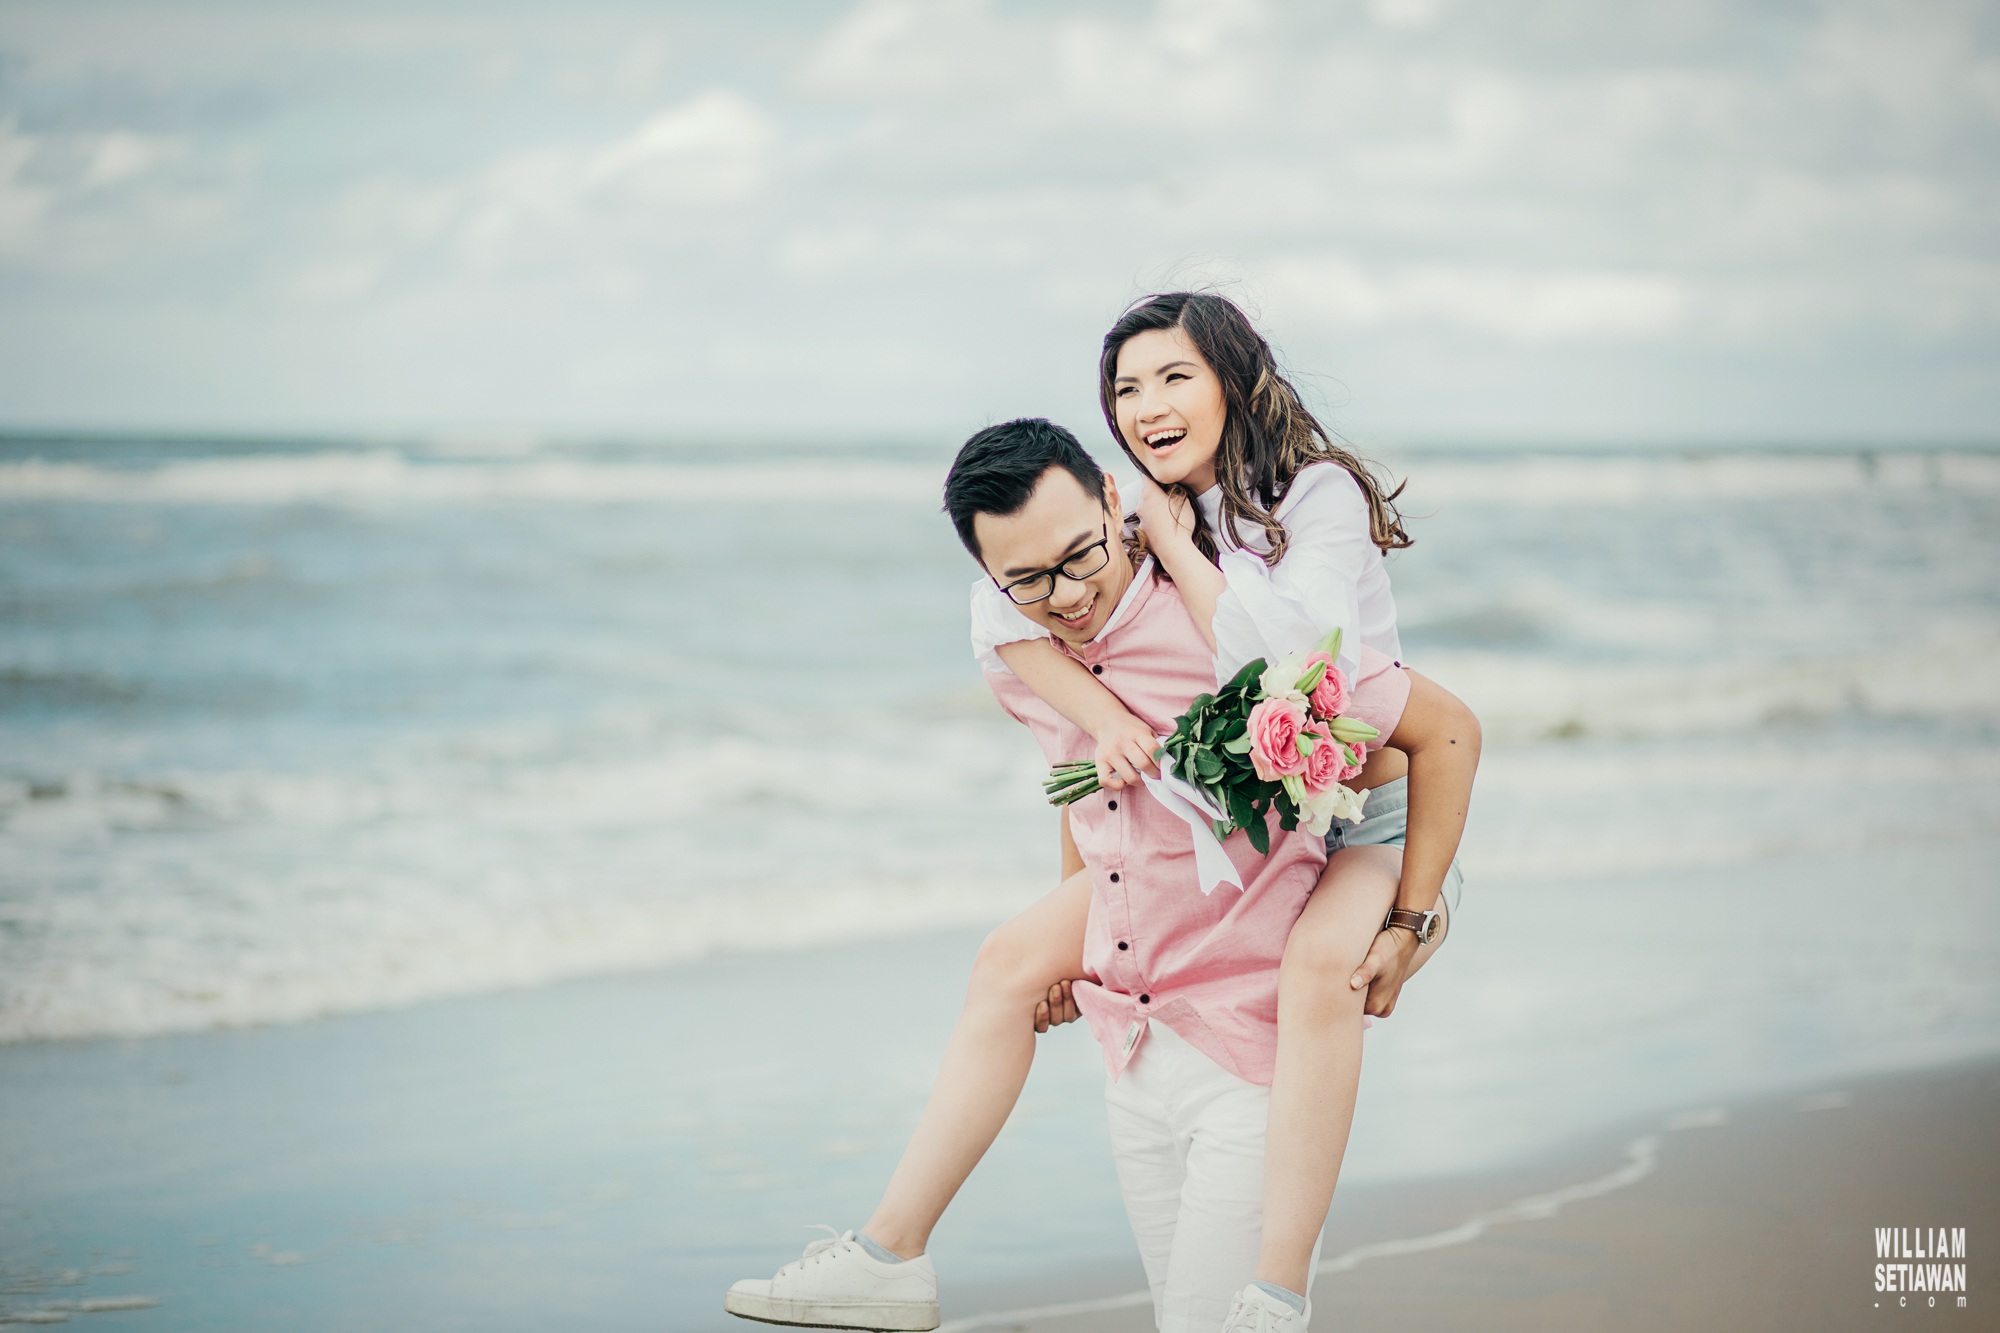 IMG_6842 Amanda Ardi - William Setiawan2 Amanda Ardi - William Setiawan2 fb